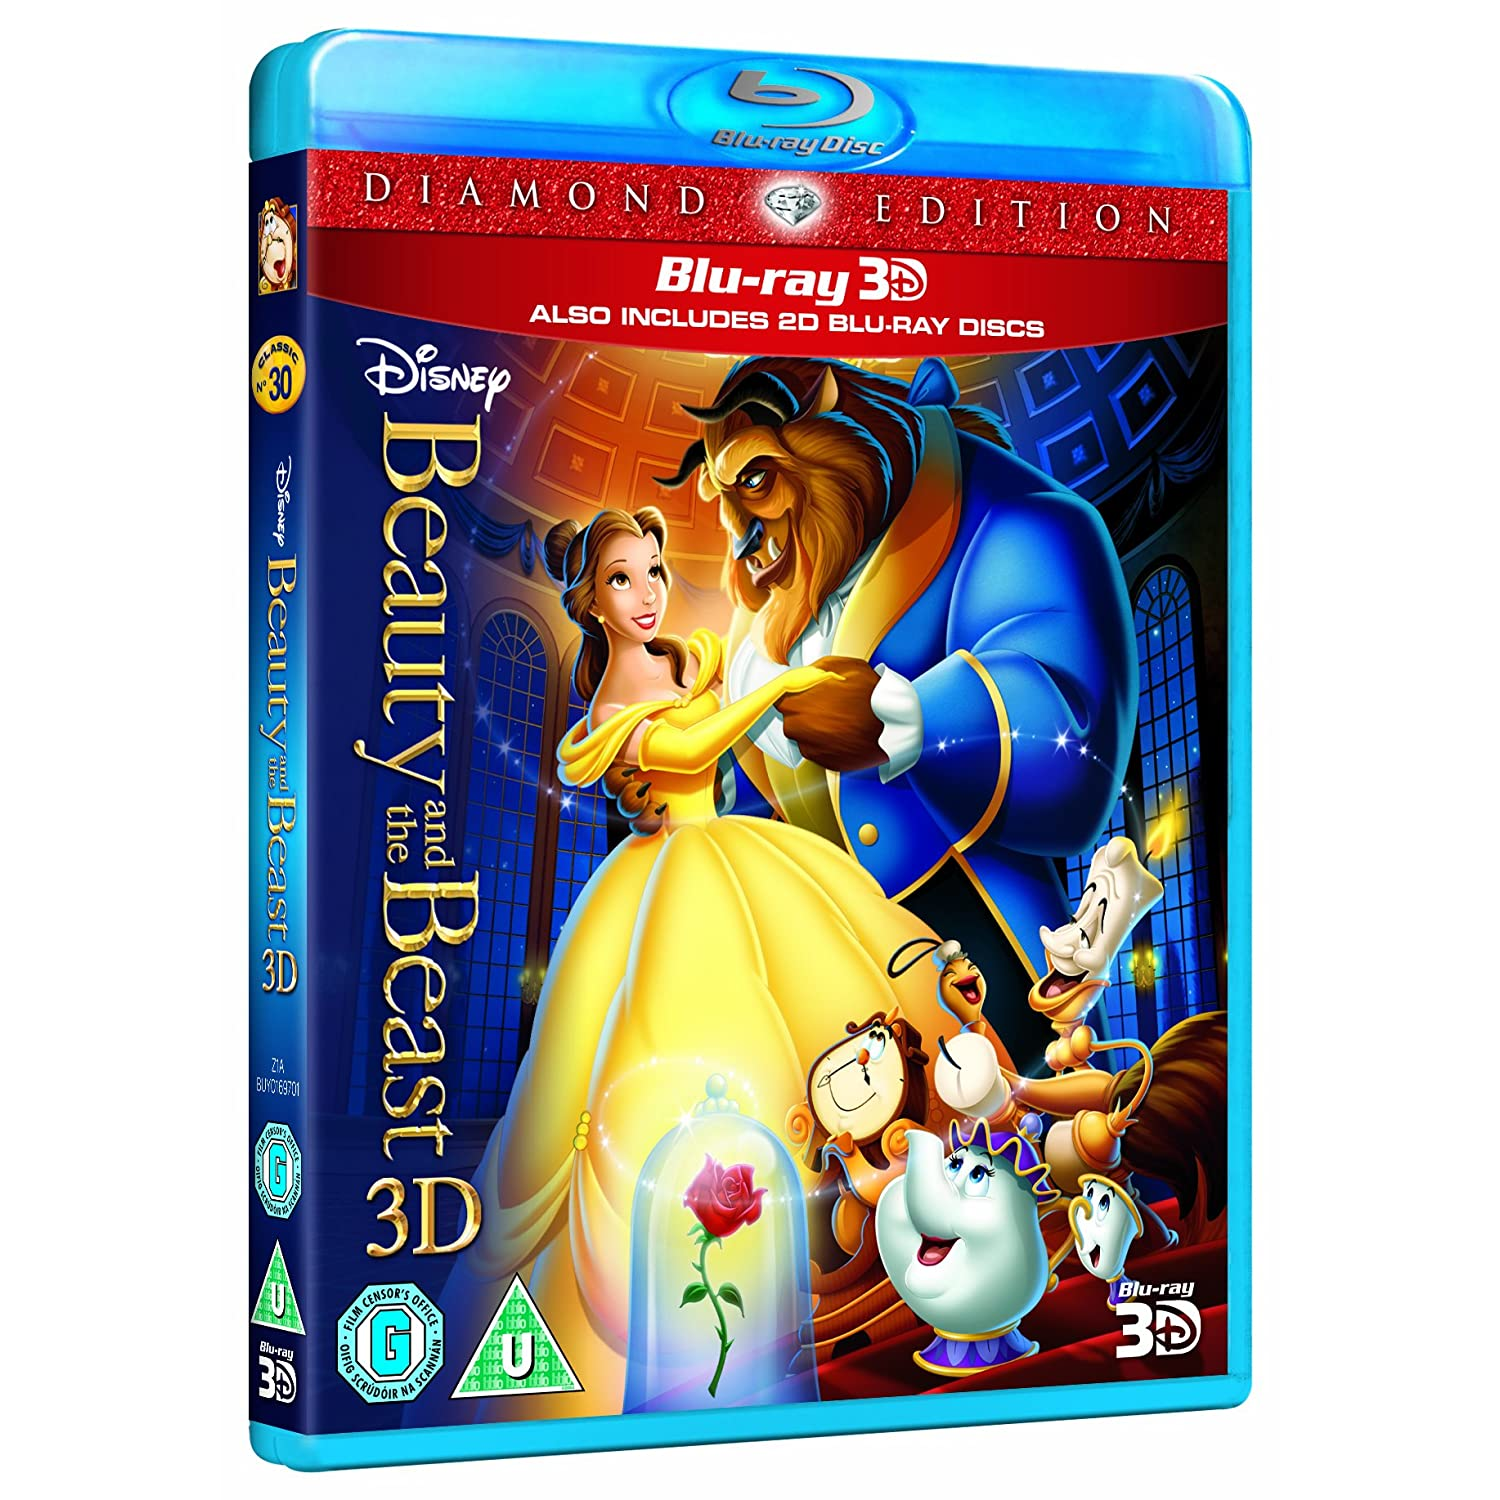 beauty and the beast 3d blu ray 3d 2d blu ray sealed. Black Bedroom Furniture Sets. Home Design Ideas